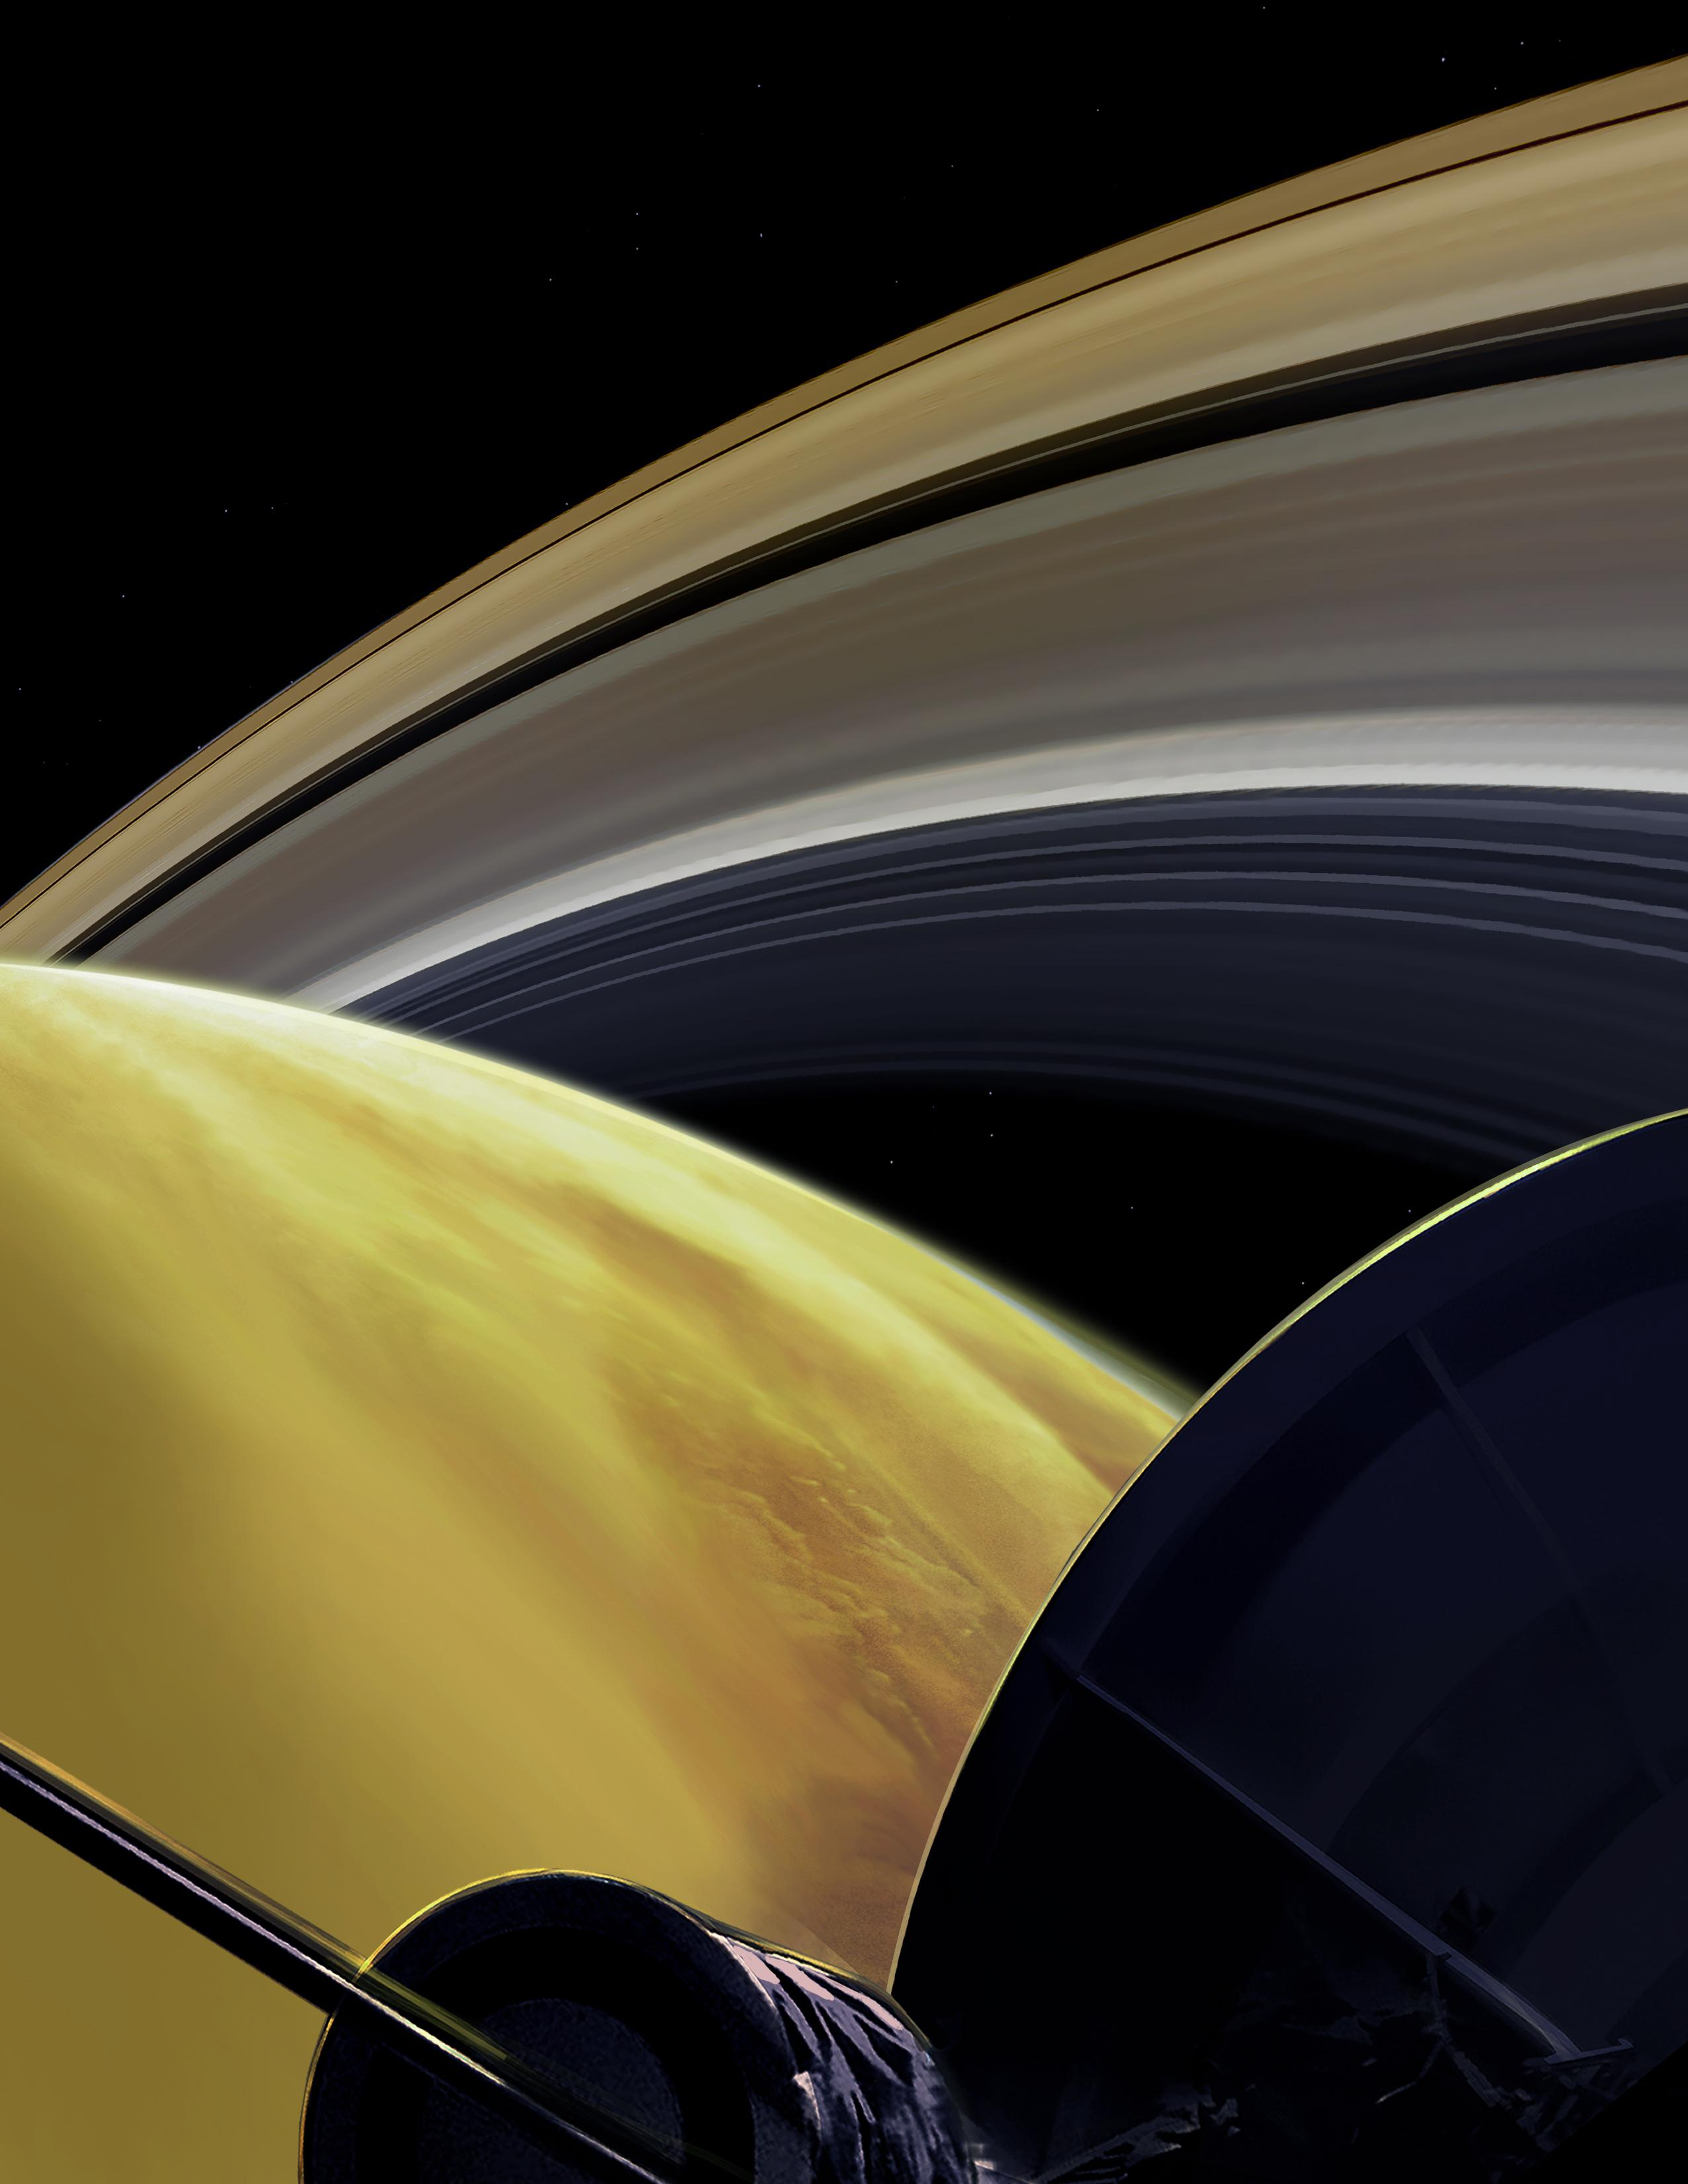 This illustration imagines the view from NASAs Cassini spacecraft during one of its final dives between Saturn and its innermost rings, as part of the missions Grand Finale.